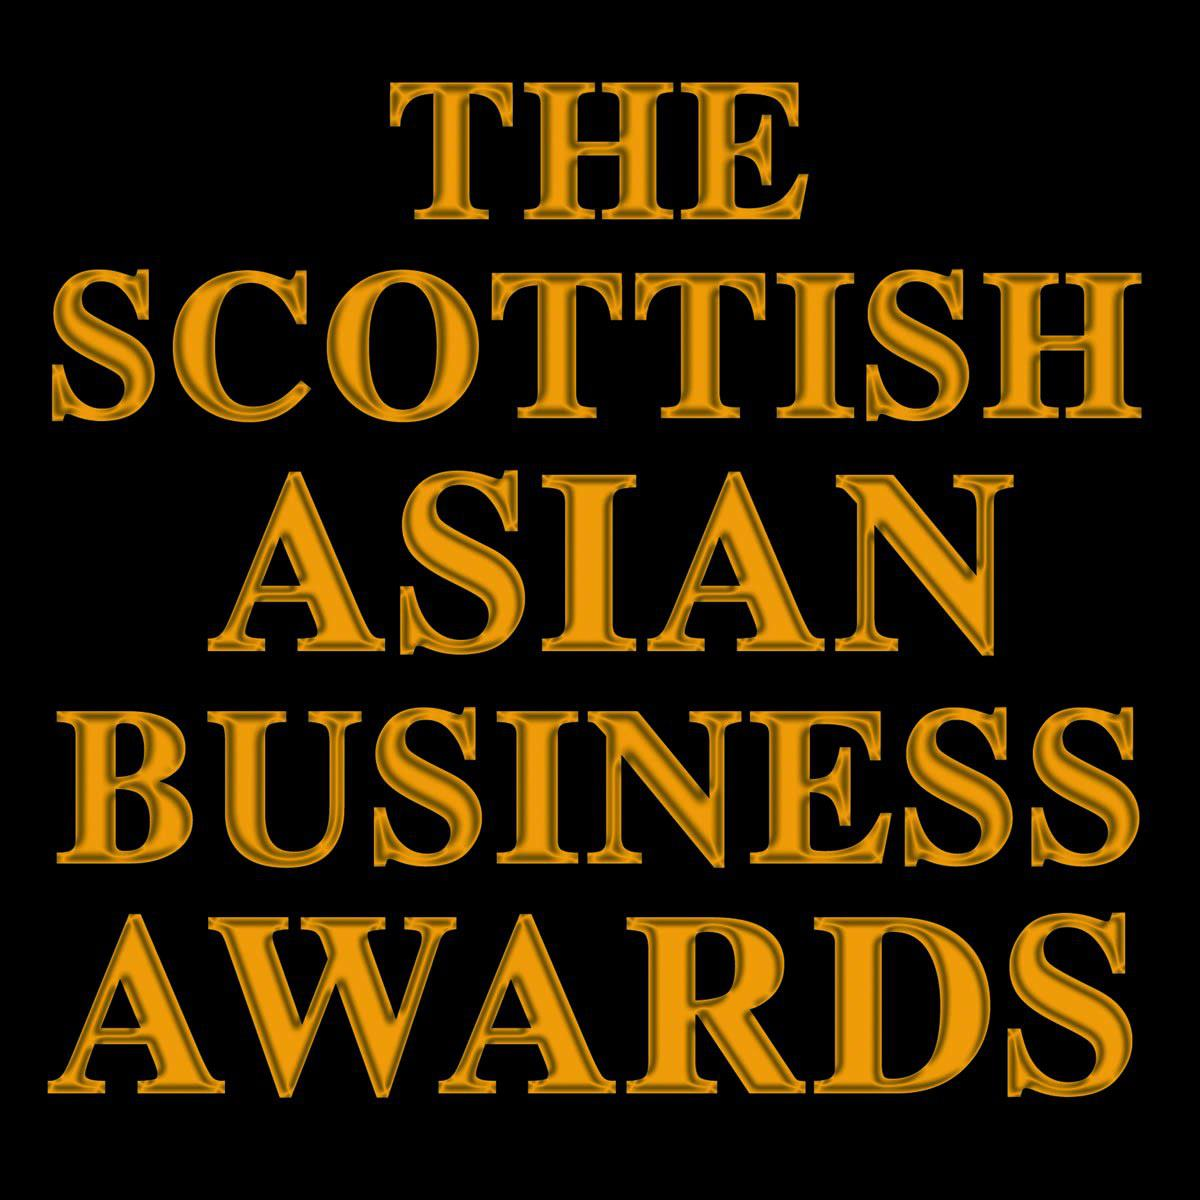 f8c1876cc The Glasgow City Hotel will once again play host to the tenth annual  Scottish Asian Business Awards where winners will be announced.